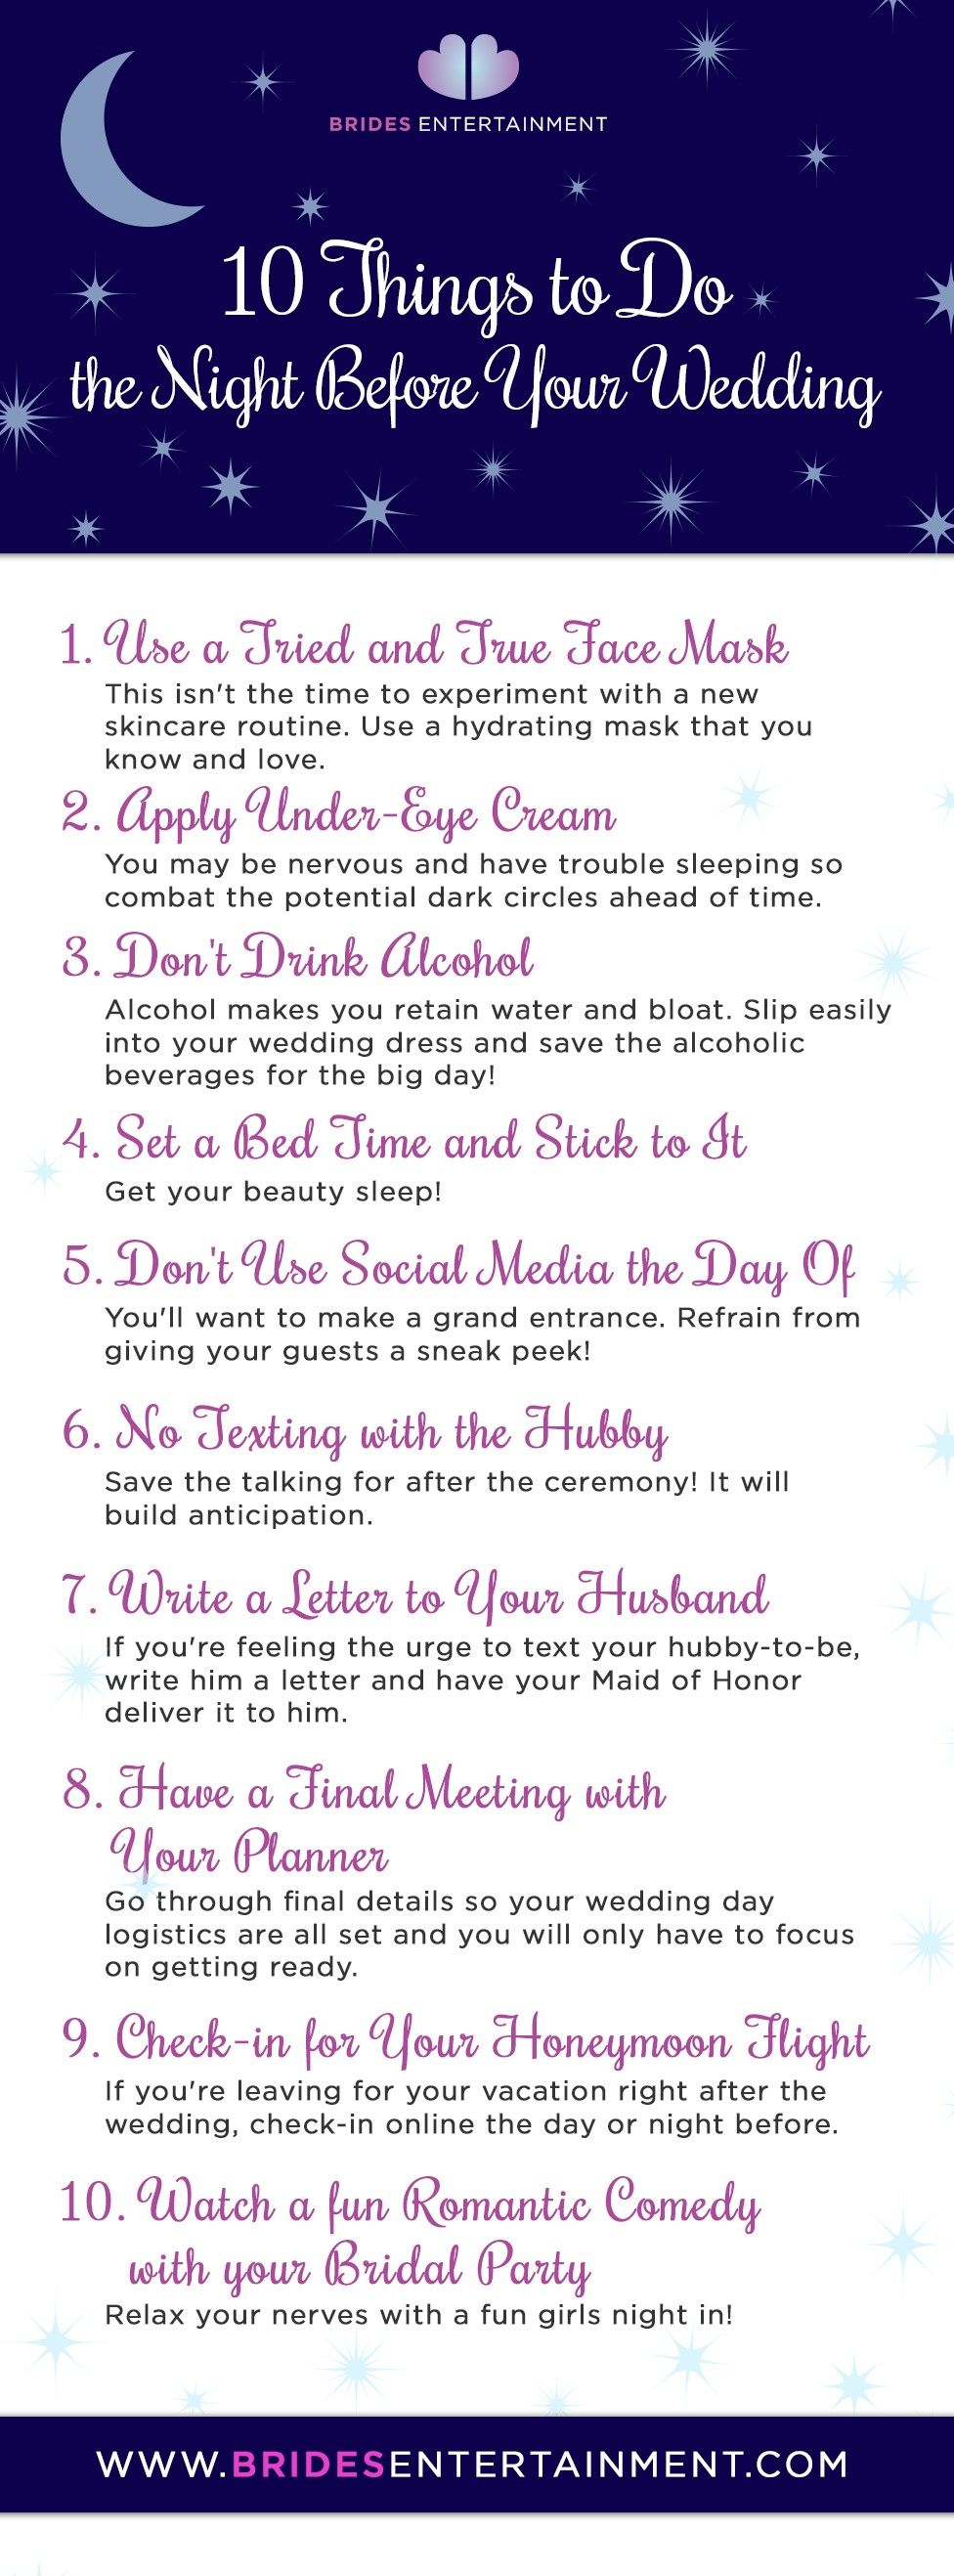 Brides Entertainment - 10 Things to Do the Night Before Your ...